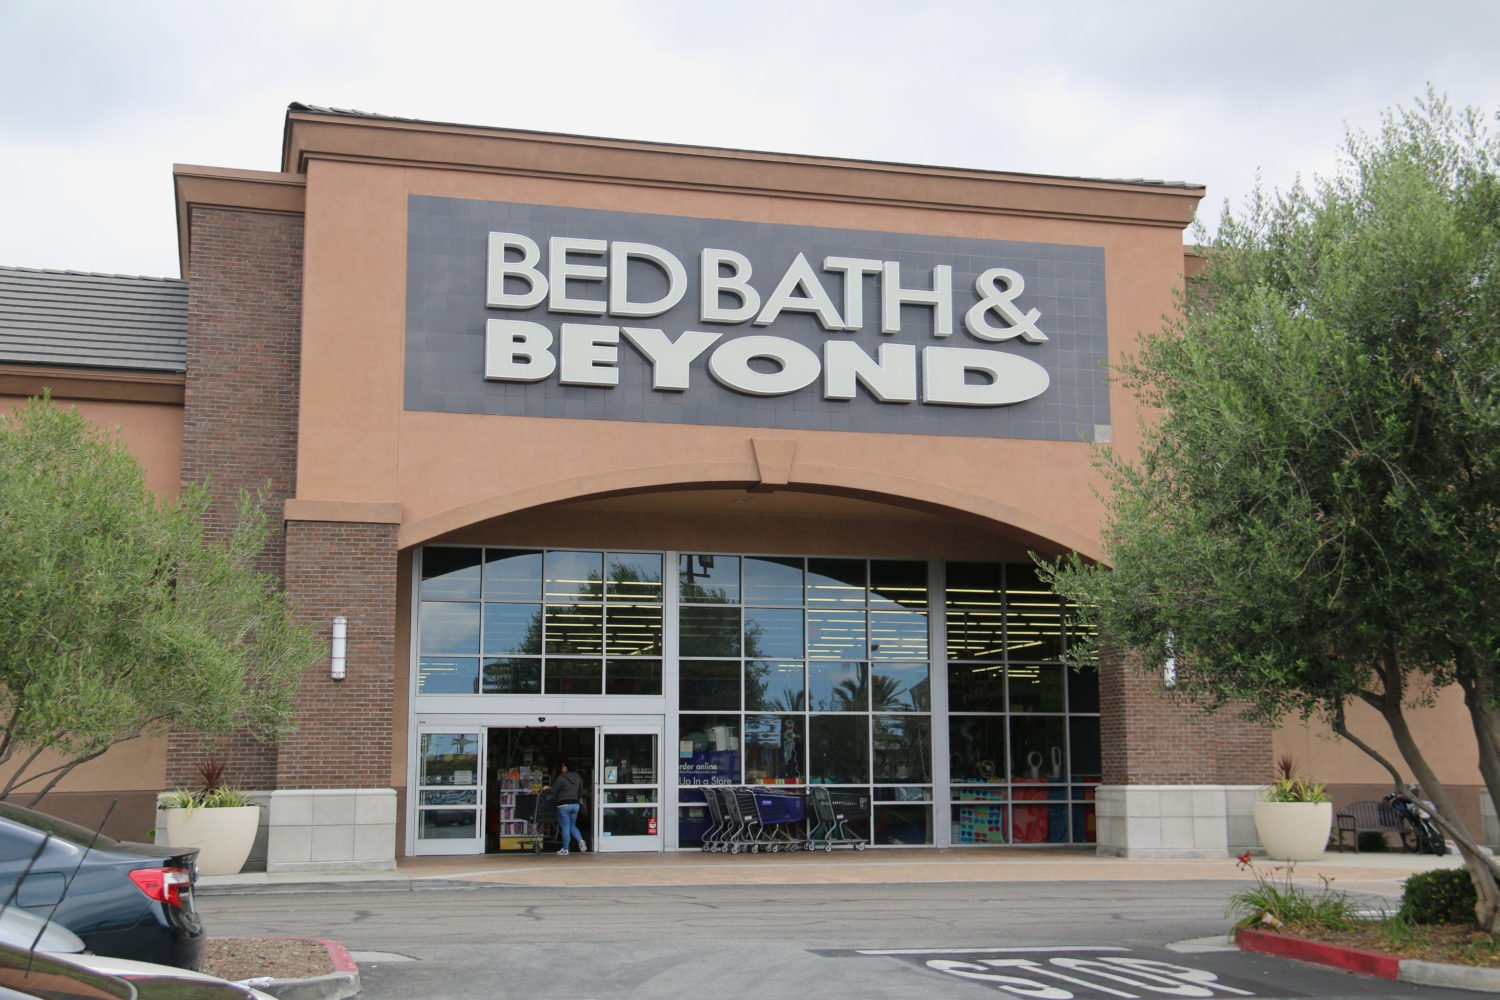 As a Bed Bath & Beyond email subscriber, you'll get offers and coupons to use on your online and in-store purchases. Using your coupons in the store is easy: you can print it out, or access your offer and show it to the cashier on your mobile device.